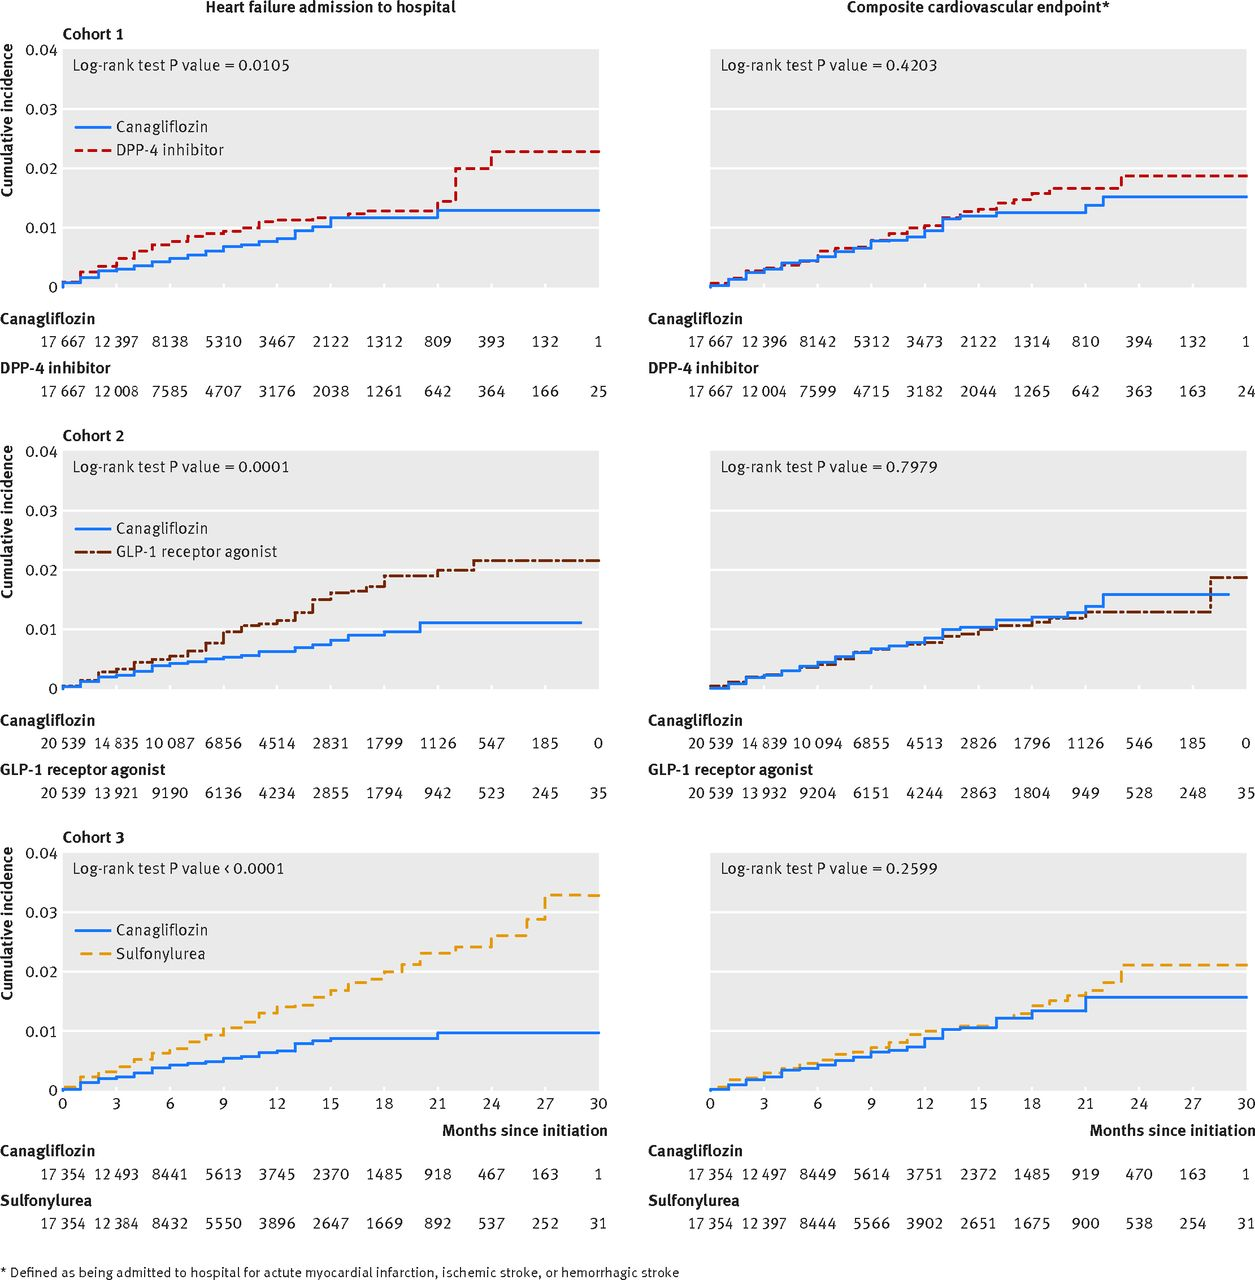 Cardiovascular outcomes associated with canagliflozin versus